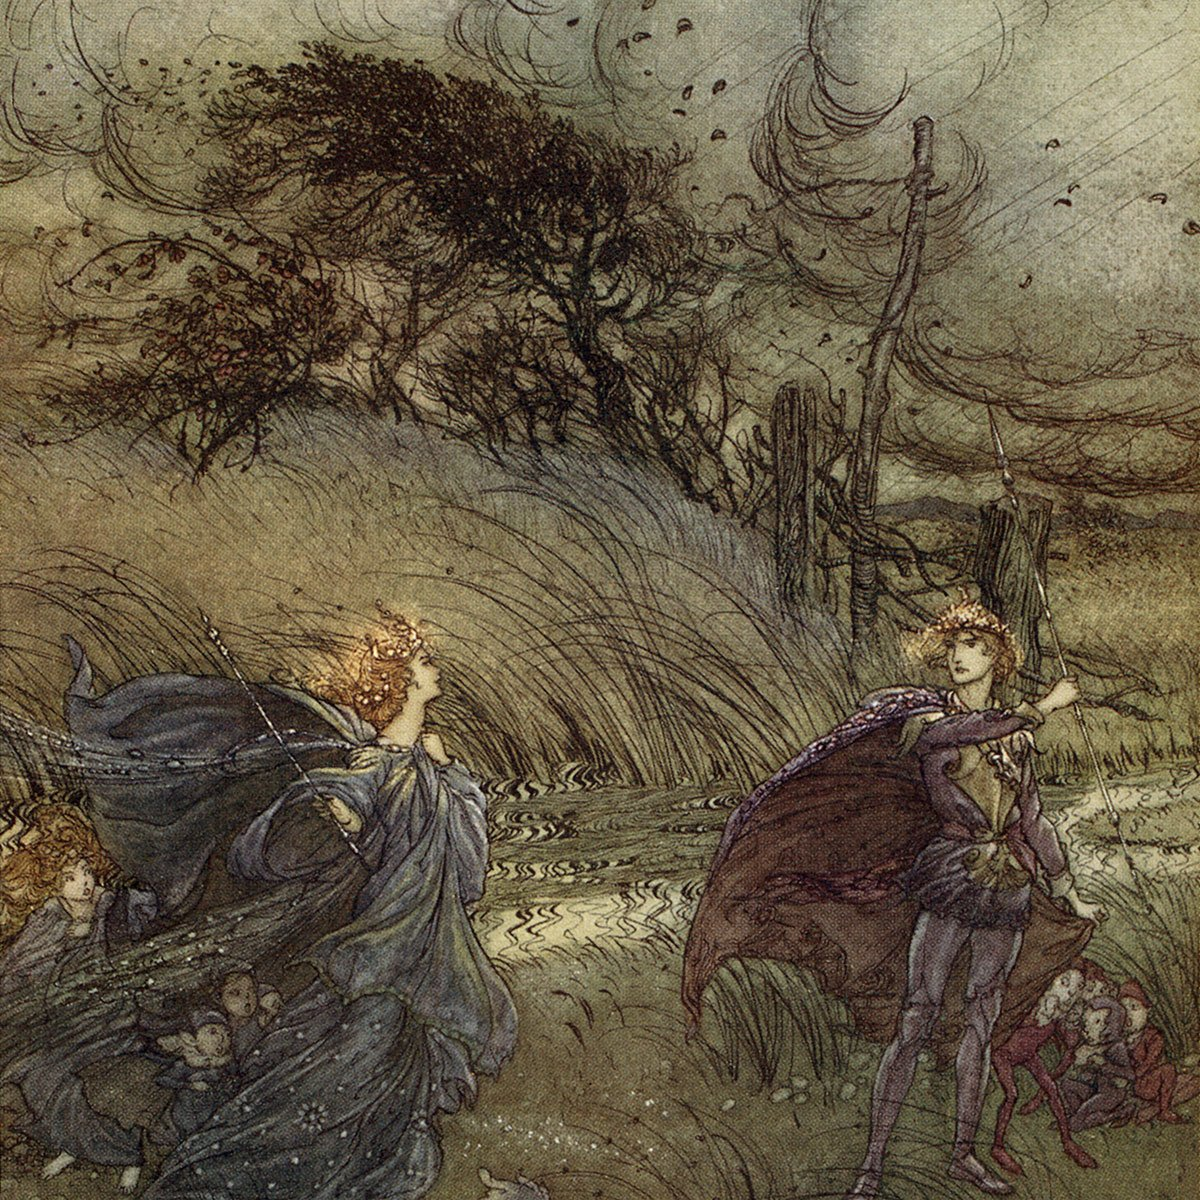 A Midsummer Night's Dream. Illustration by Arthur Rackham (1867 - 1939) to the play by William Shakespeare.